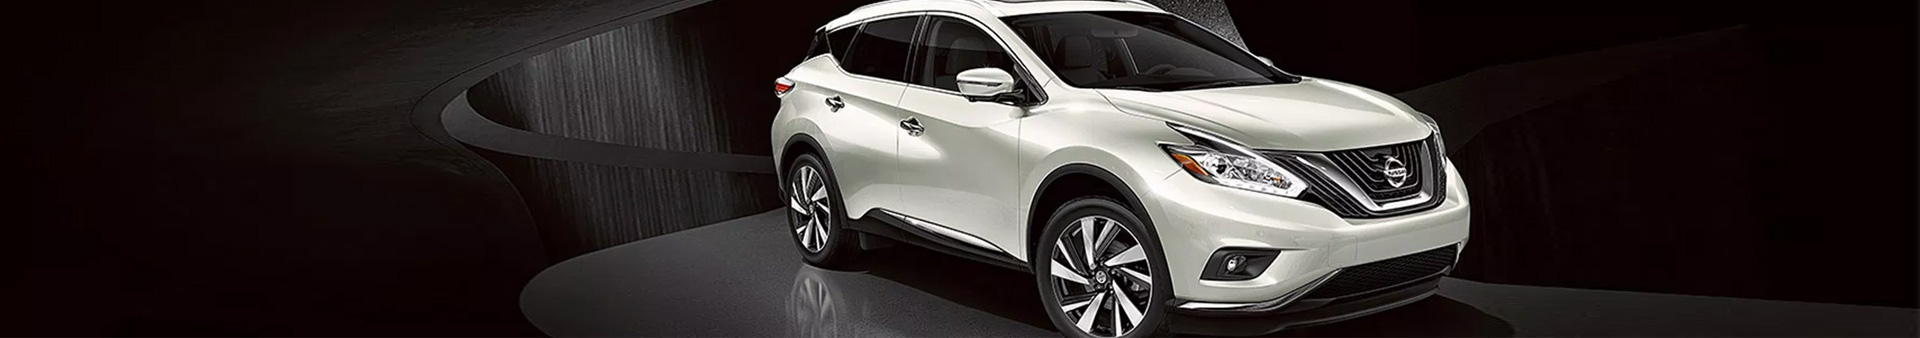 Welcome to the 2017 Nissan Murano Crossover in Edmonton, AB